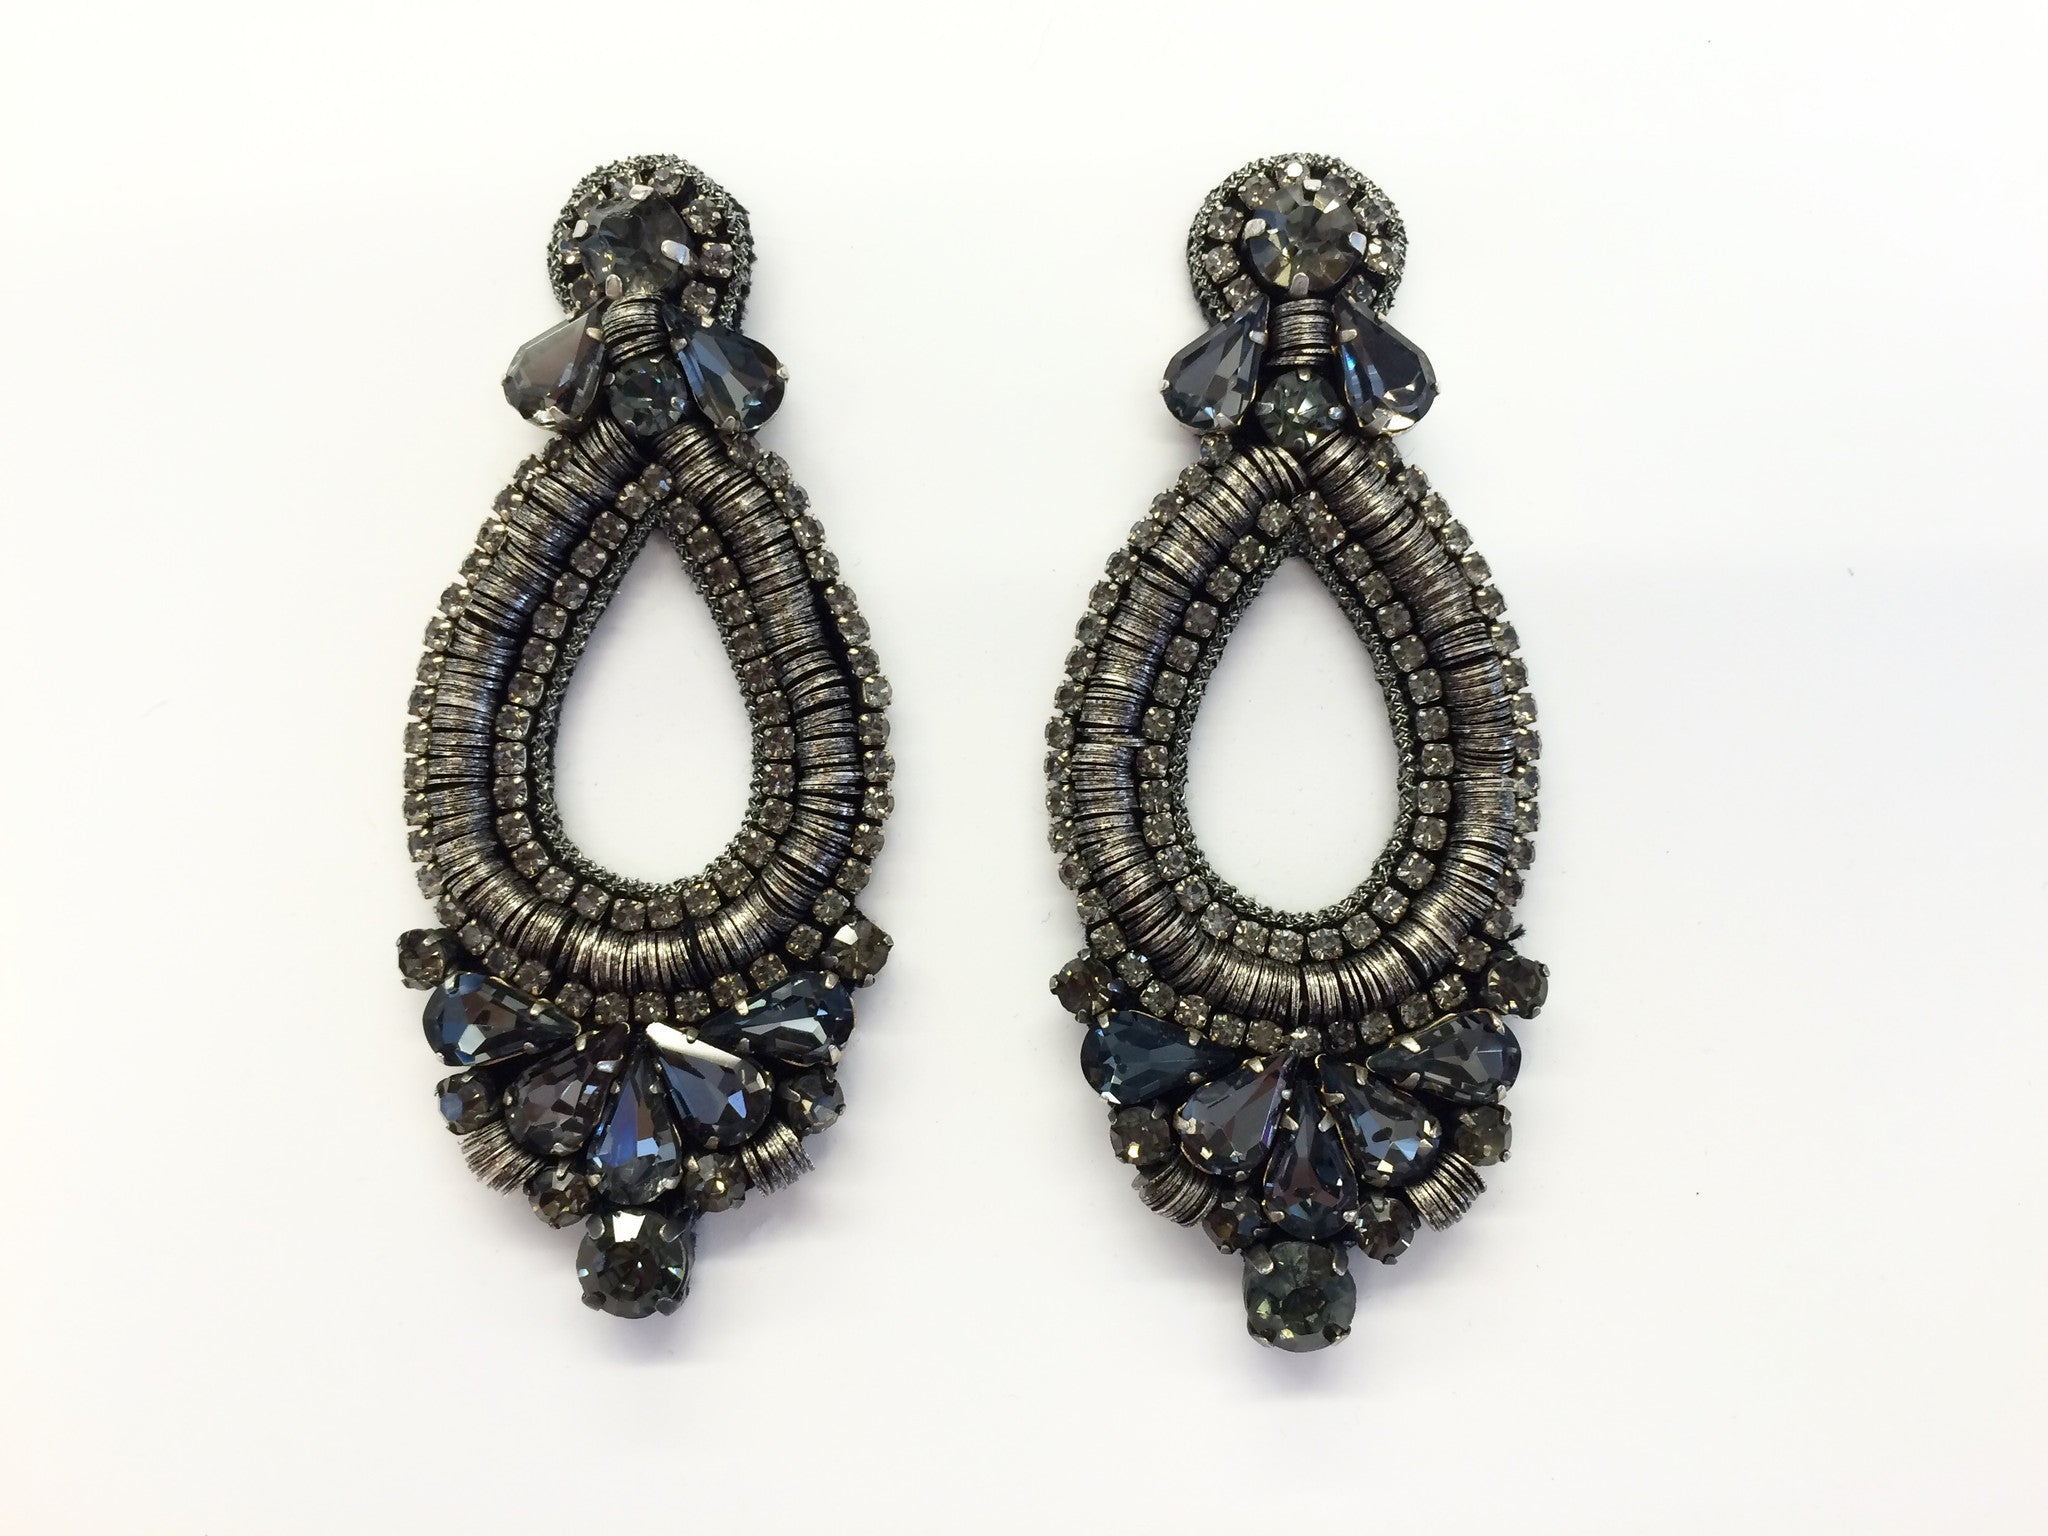 Earring with Black Diamond Crystal & Metal Sequins